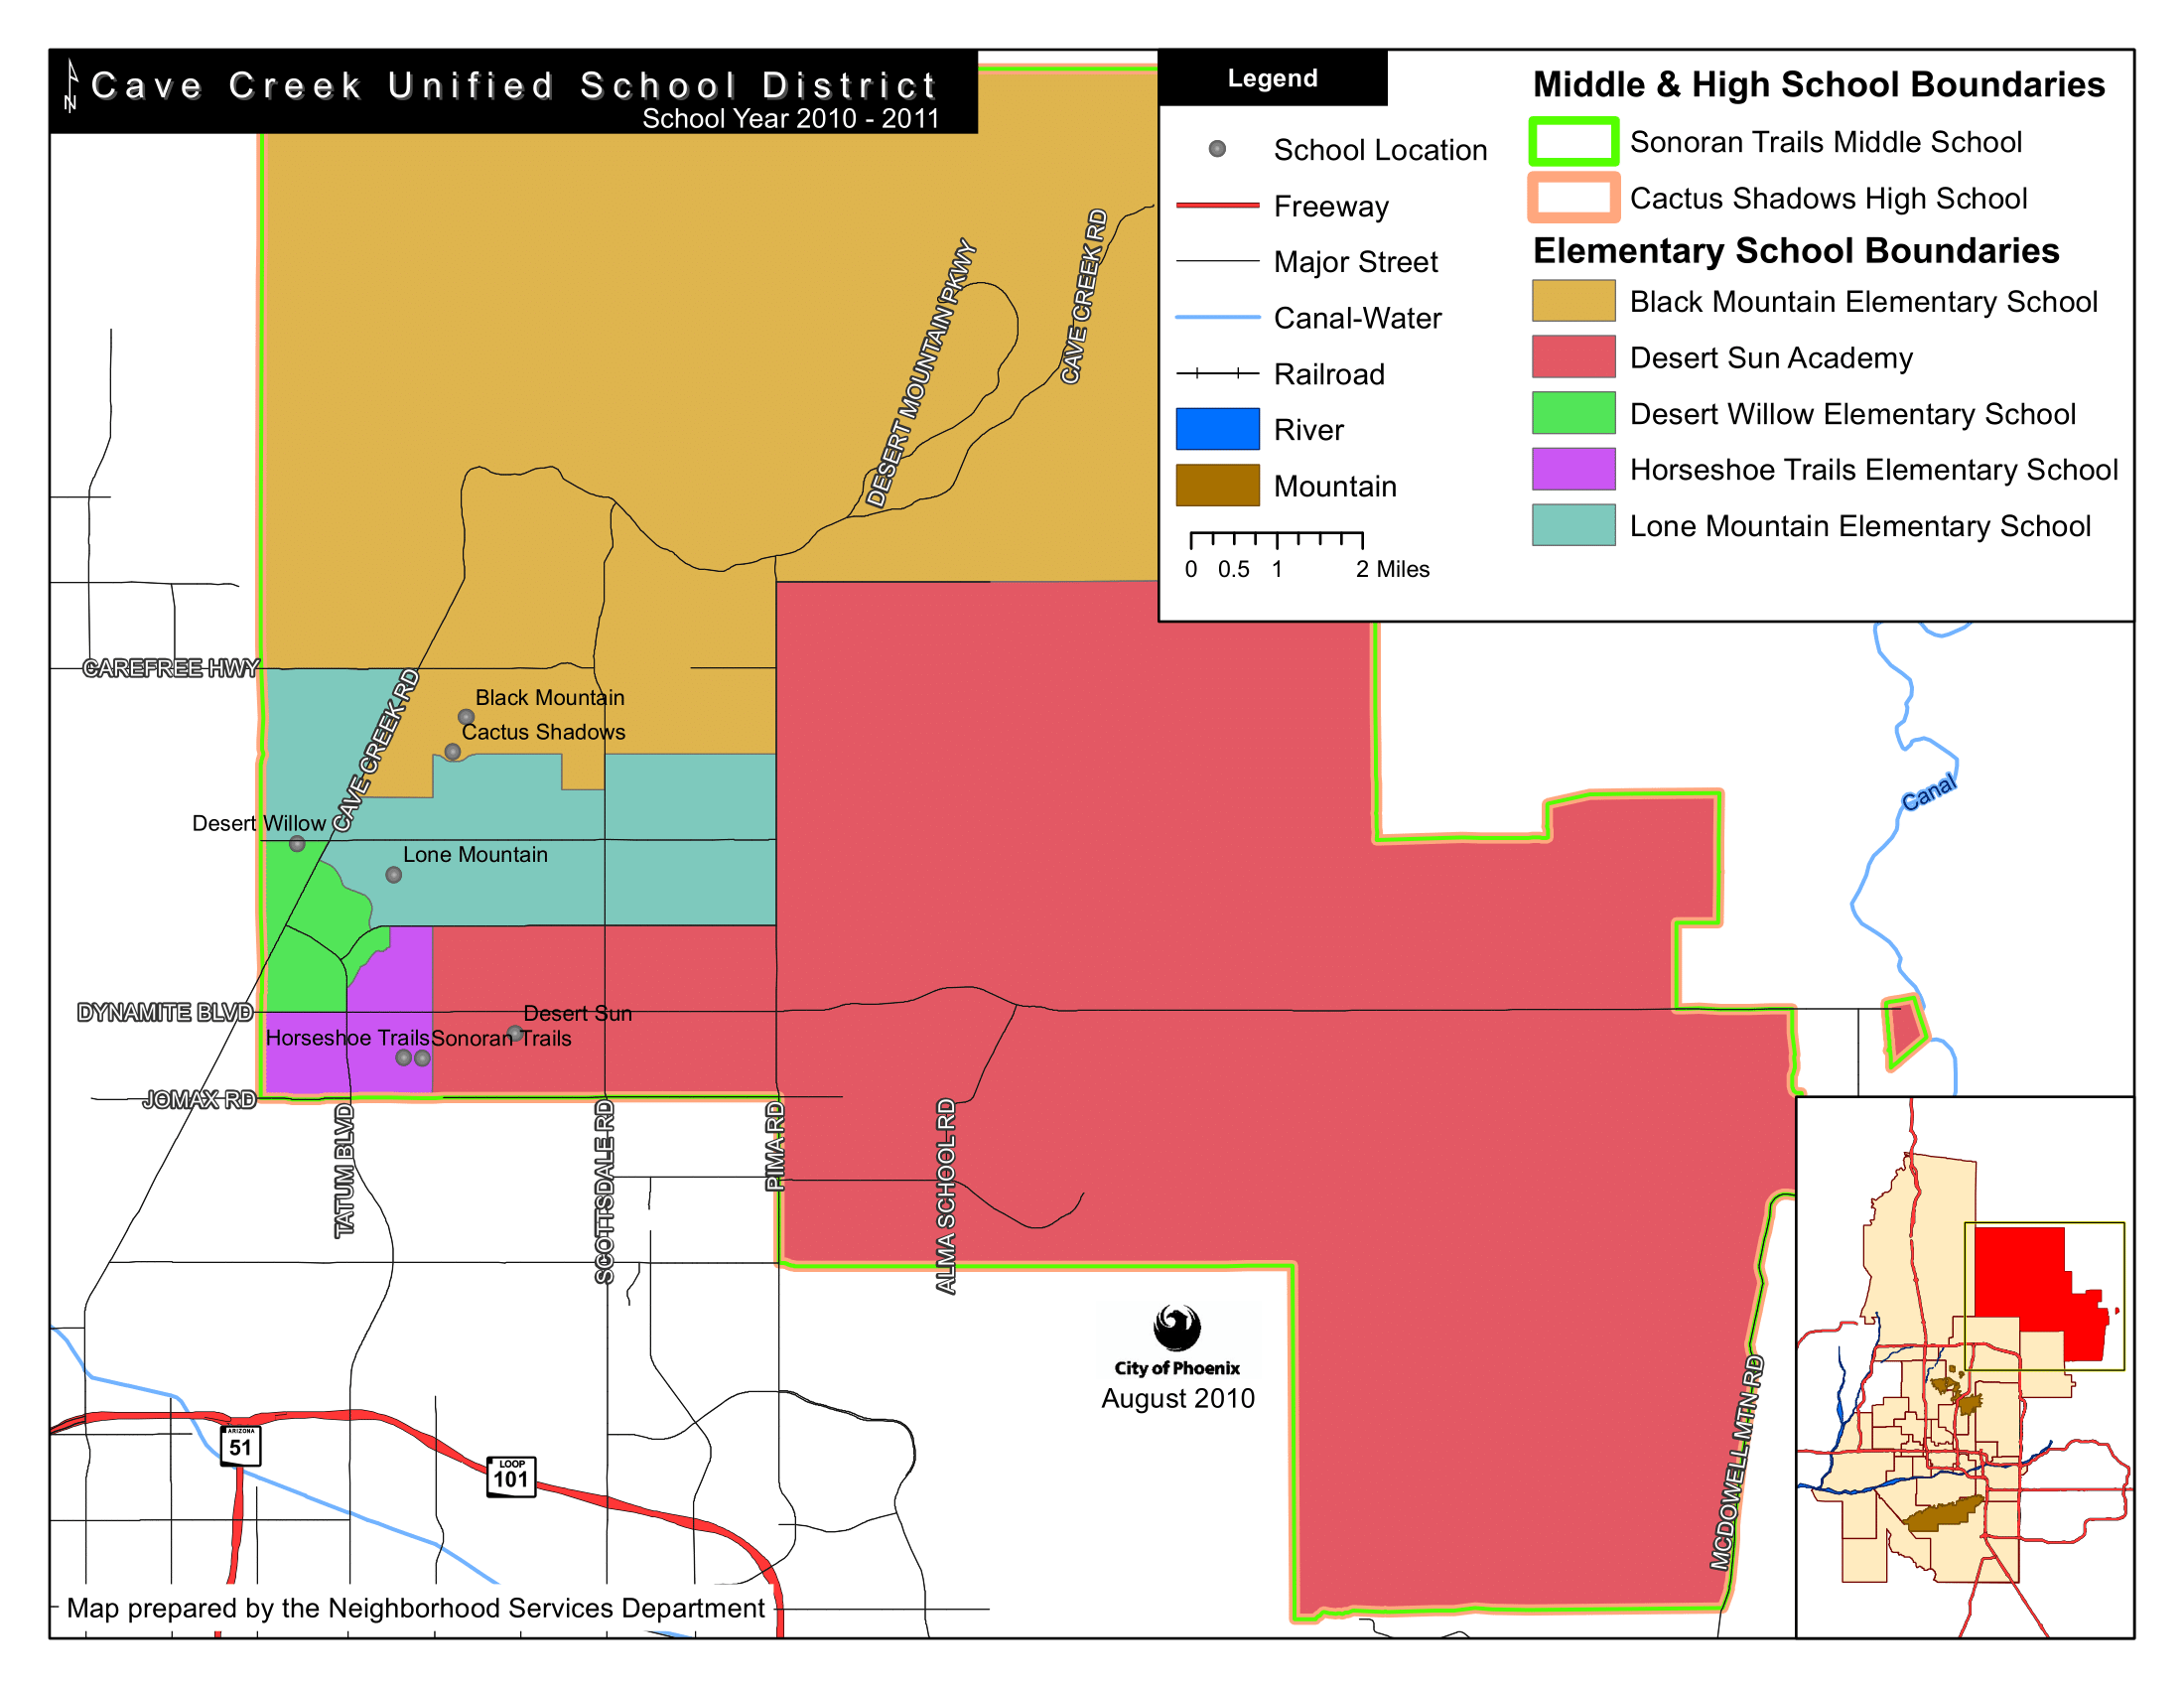 Cave Creek USD Combined Elementary, Middle and High School Boundary Map